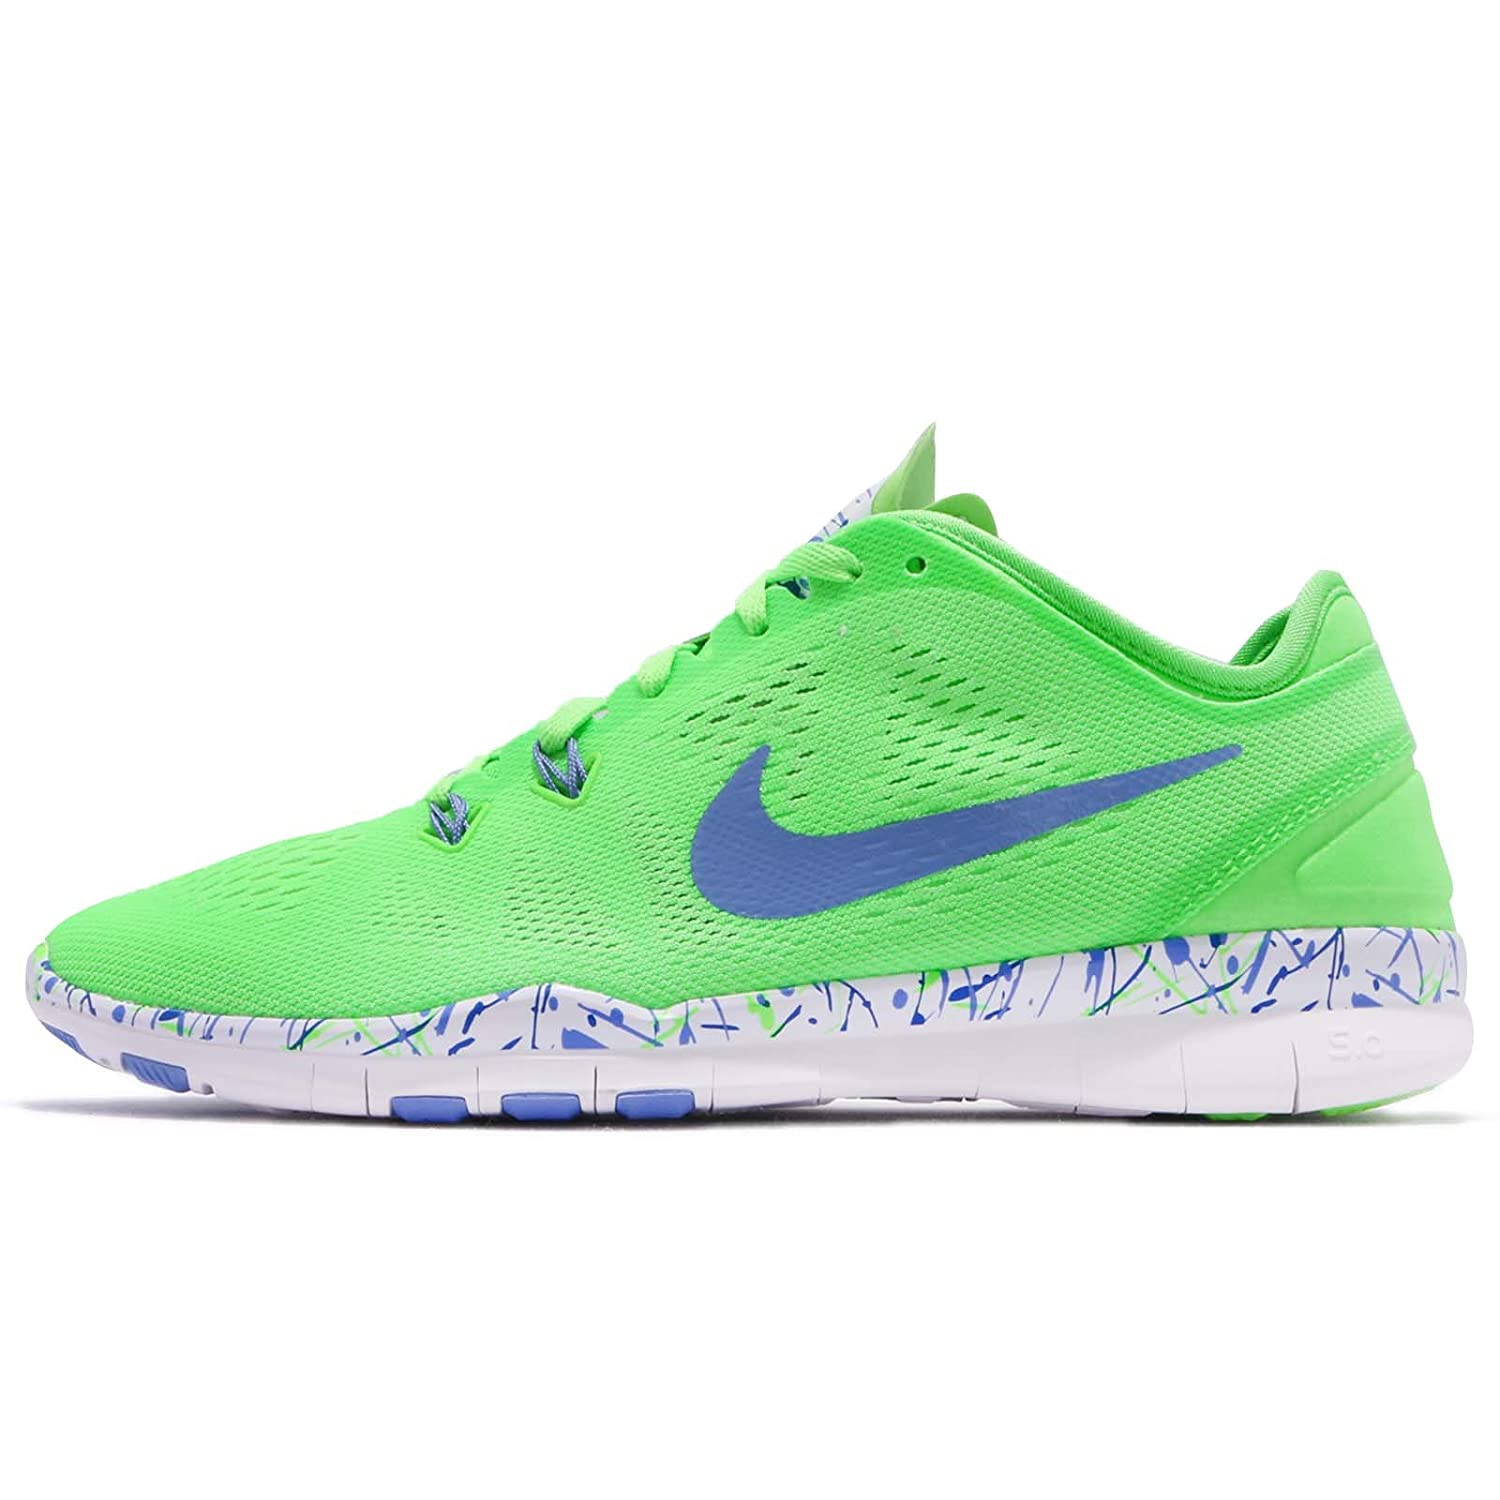 size 40 90f81 31ec5 ... promo code for amazon nike womens free 5.0 tr fit training shoe print  voltage green white